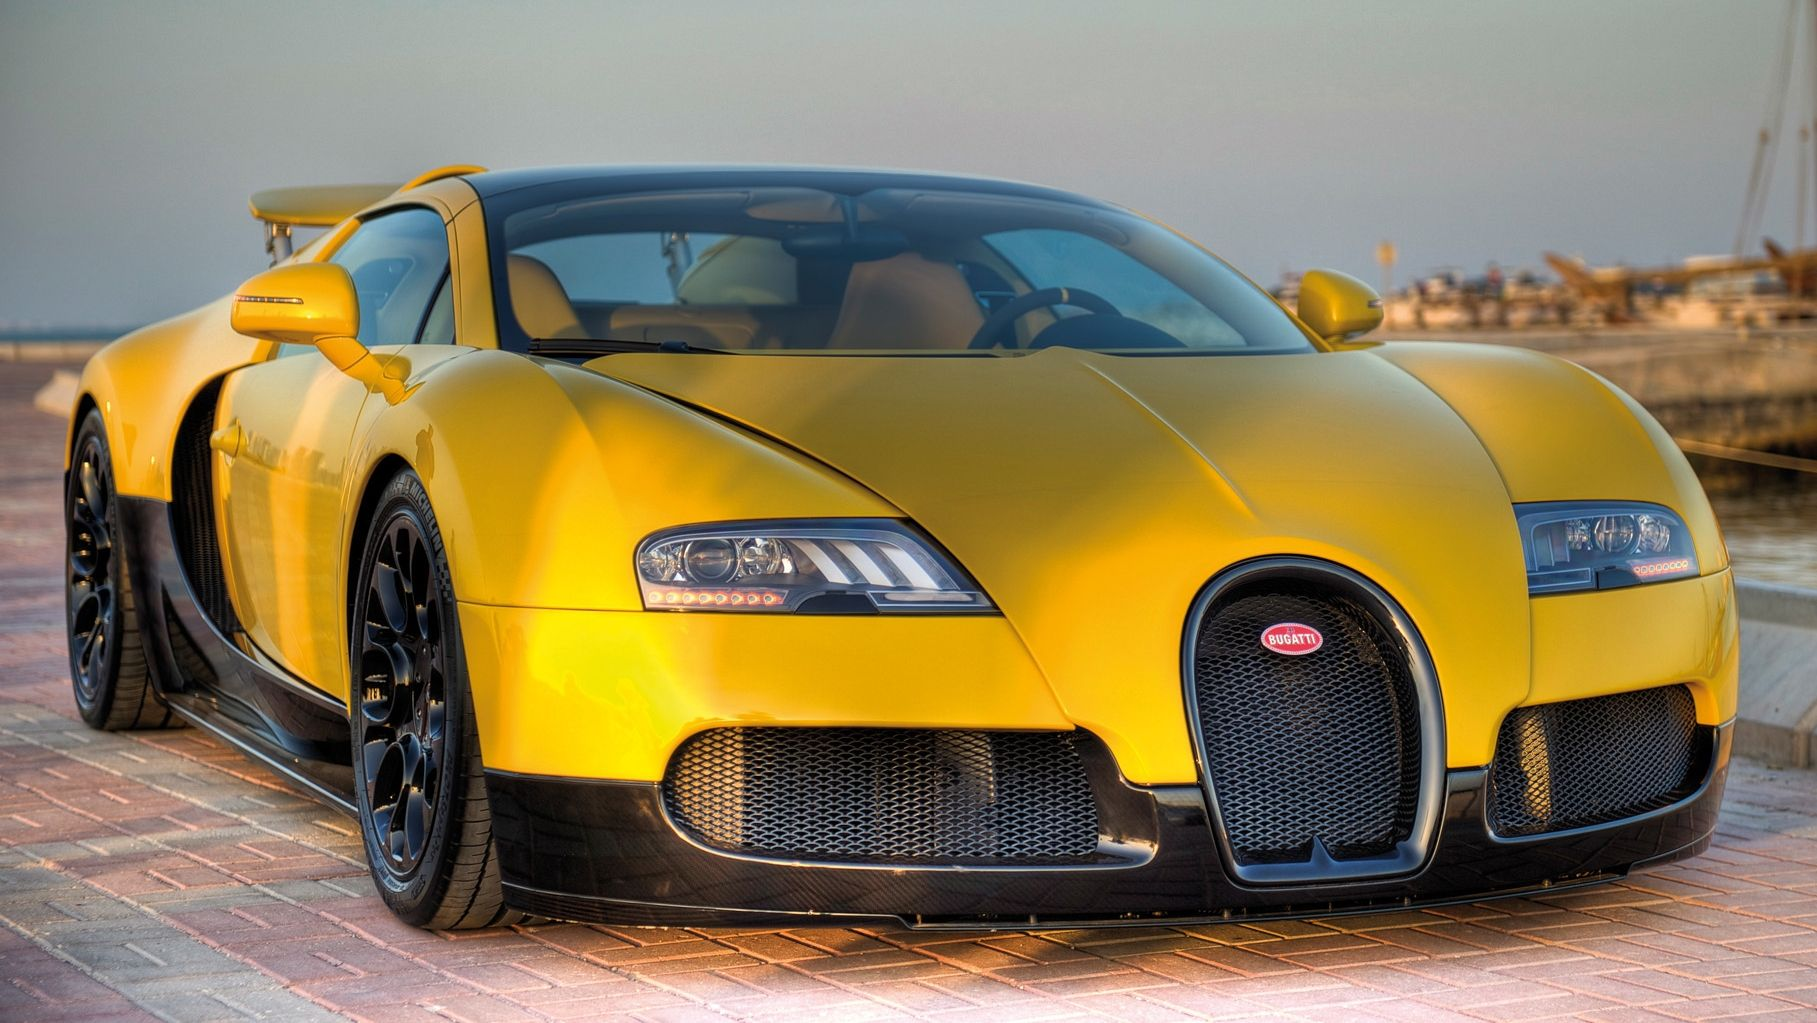 car shows 2014 bugatti veyron 16 4 grand sport qatar special edition. Black Bedroom Furniture Sets. Home Design Ideas